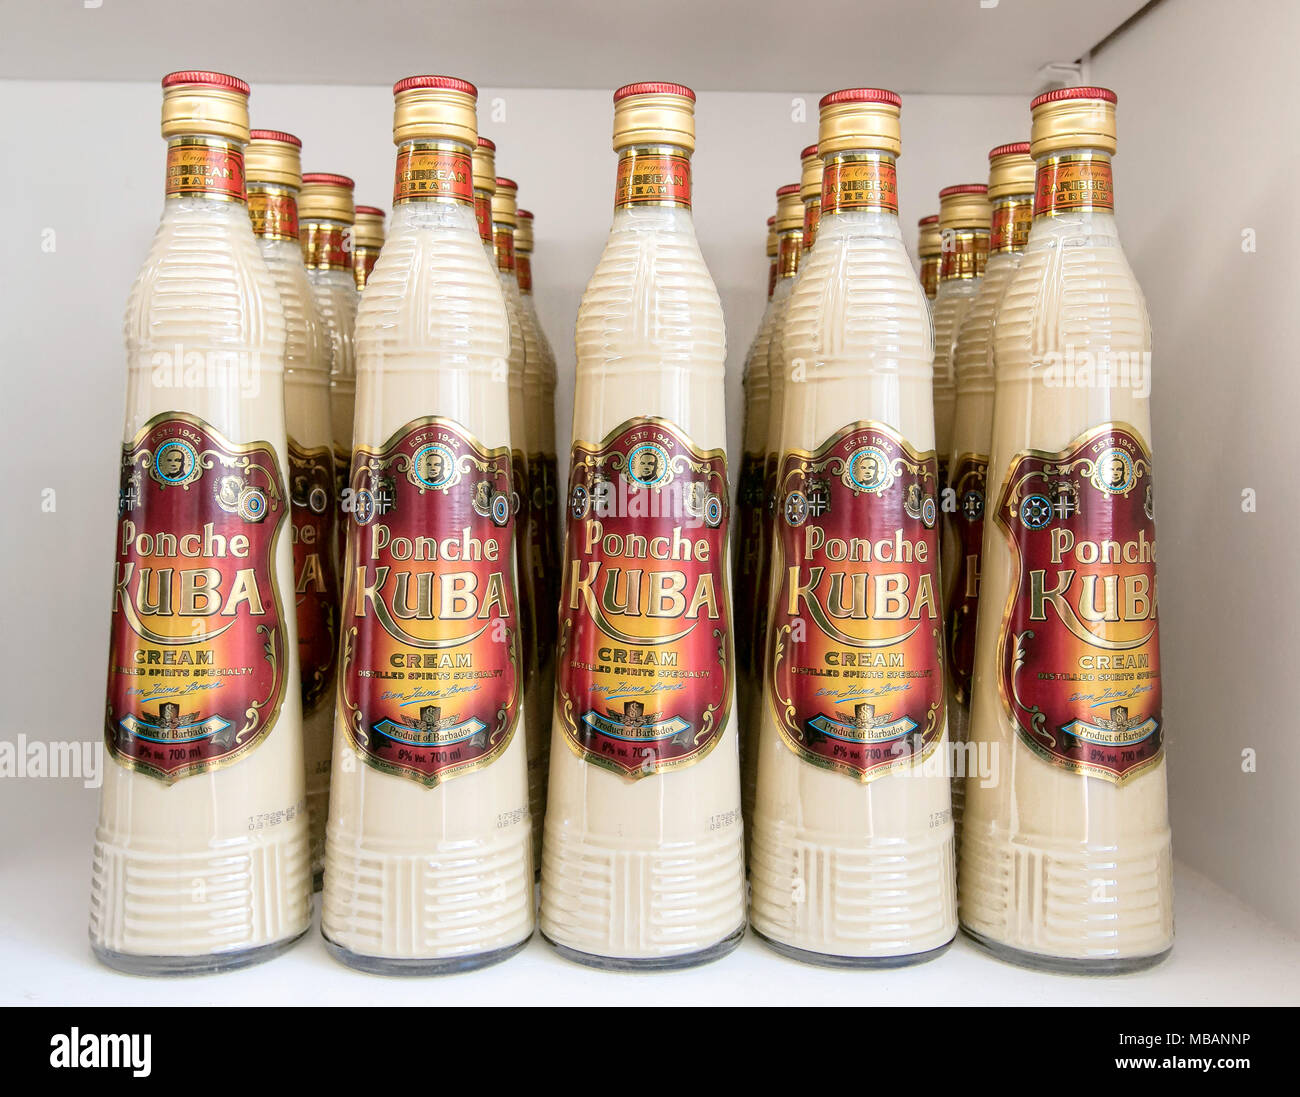 Barbados, March 23, 2018: Bottles of Ponche Kuba for sale at Mount Gay rum distillery. - Stock Image